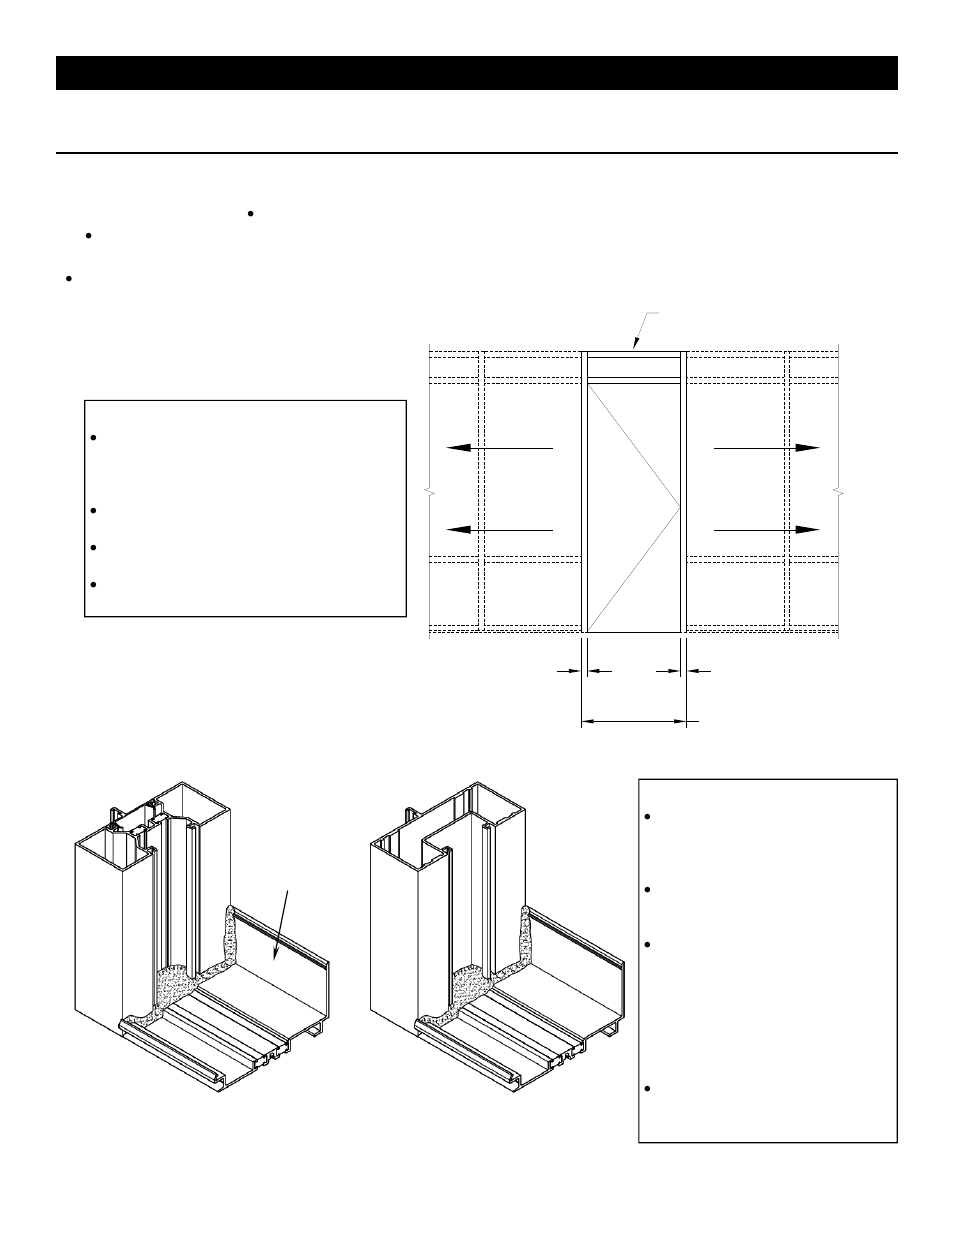 Series 403x storefront installation instructions | EFCO 403X Series User Manual | Page 19 / 29